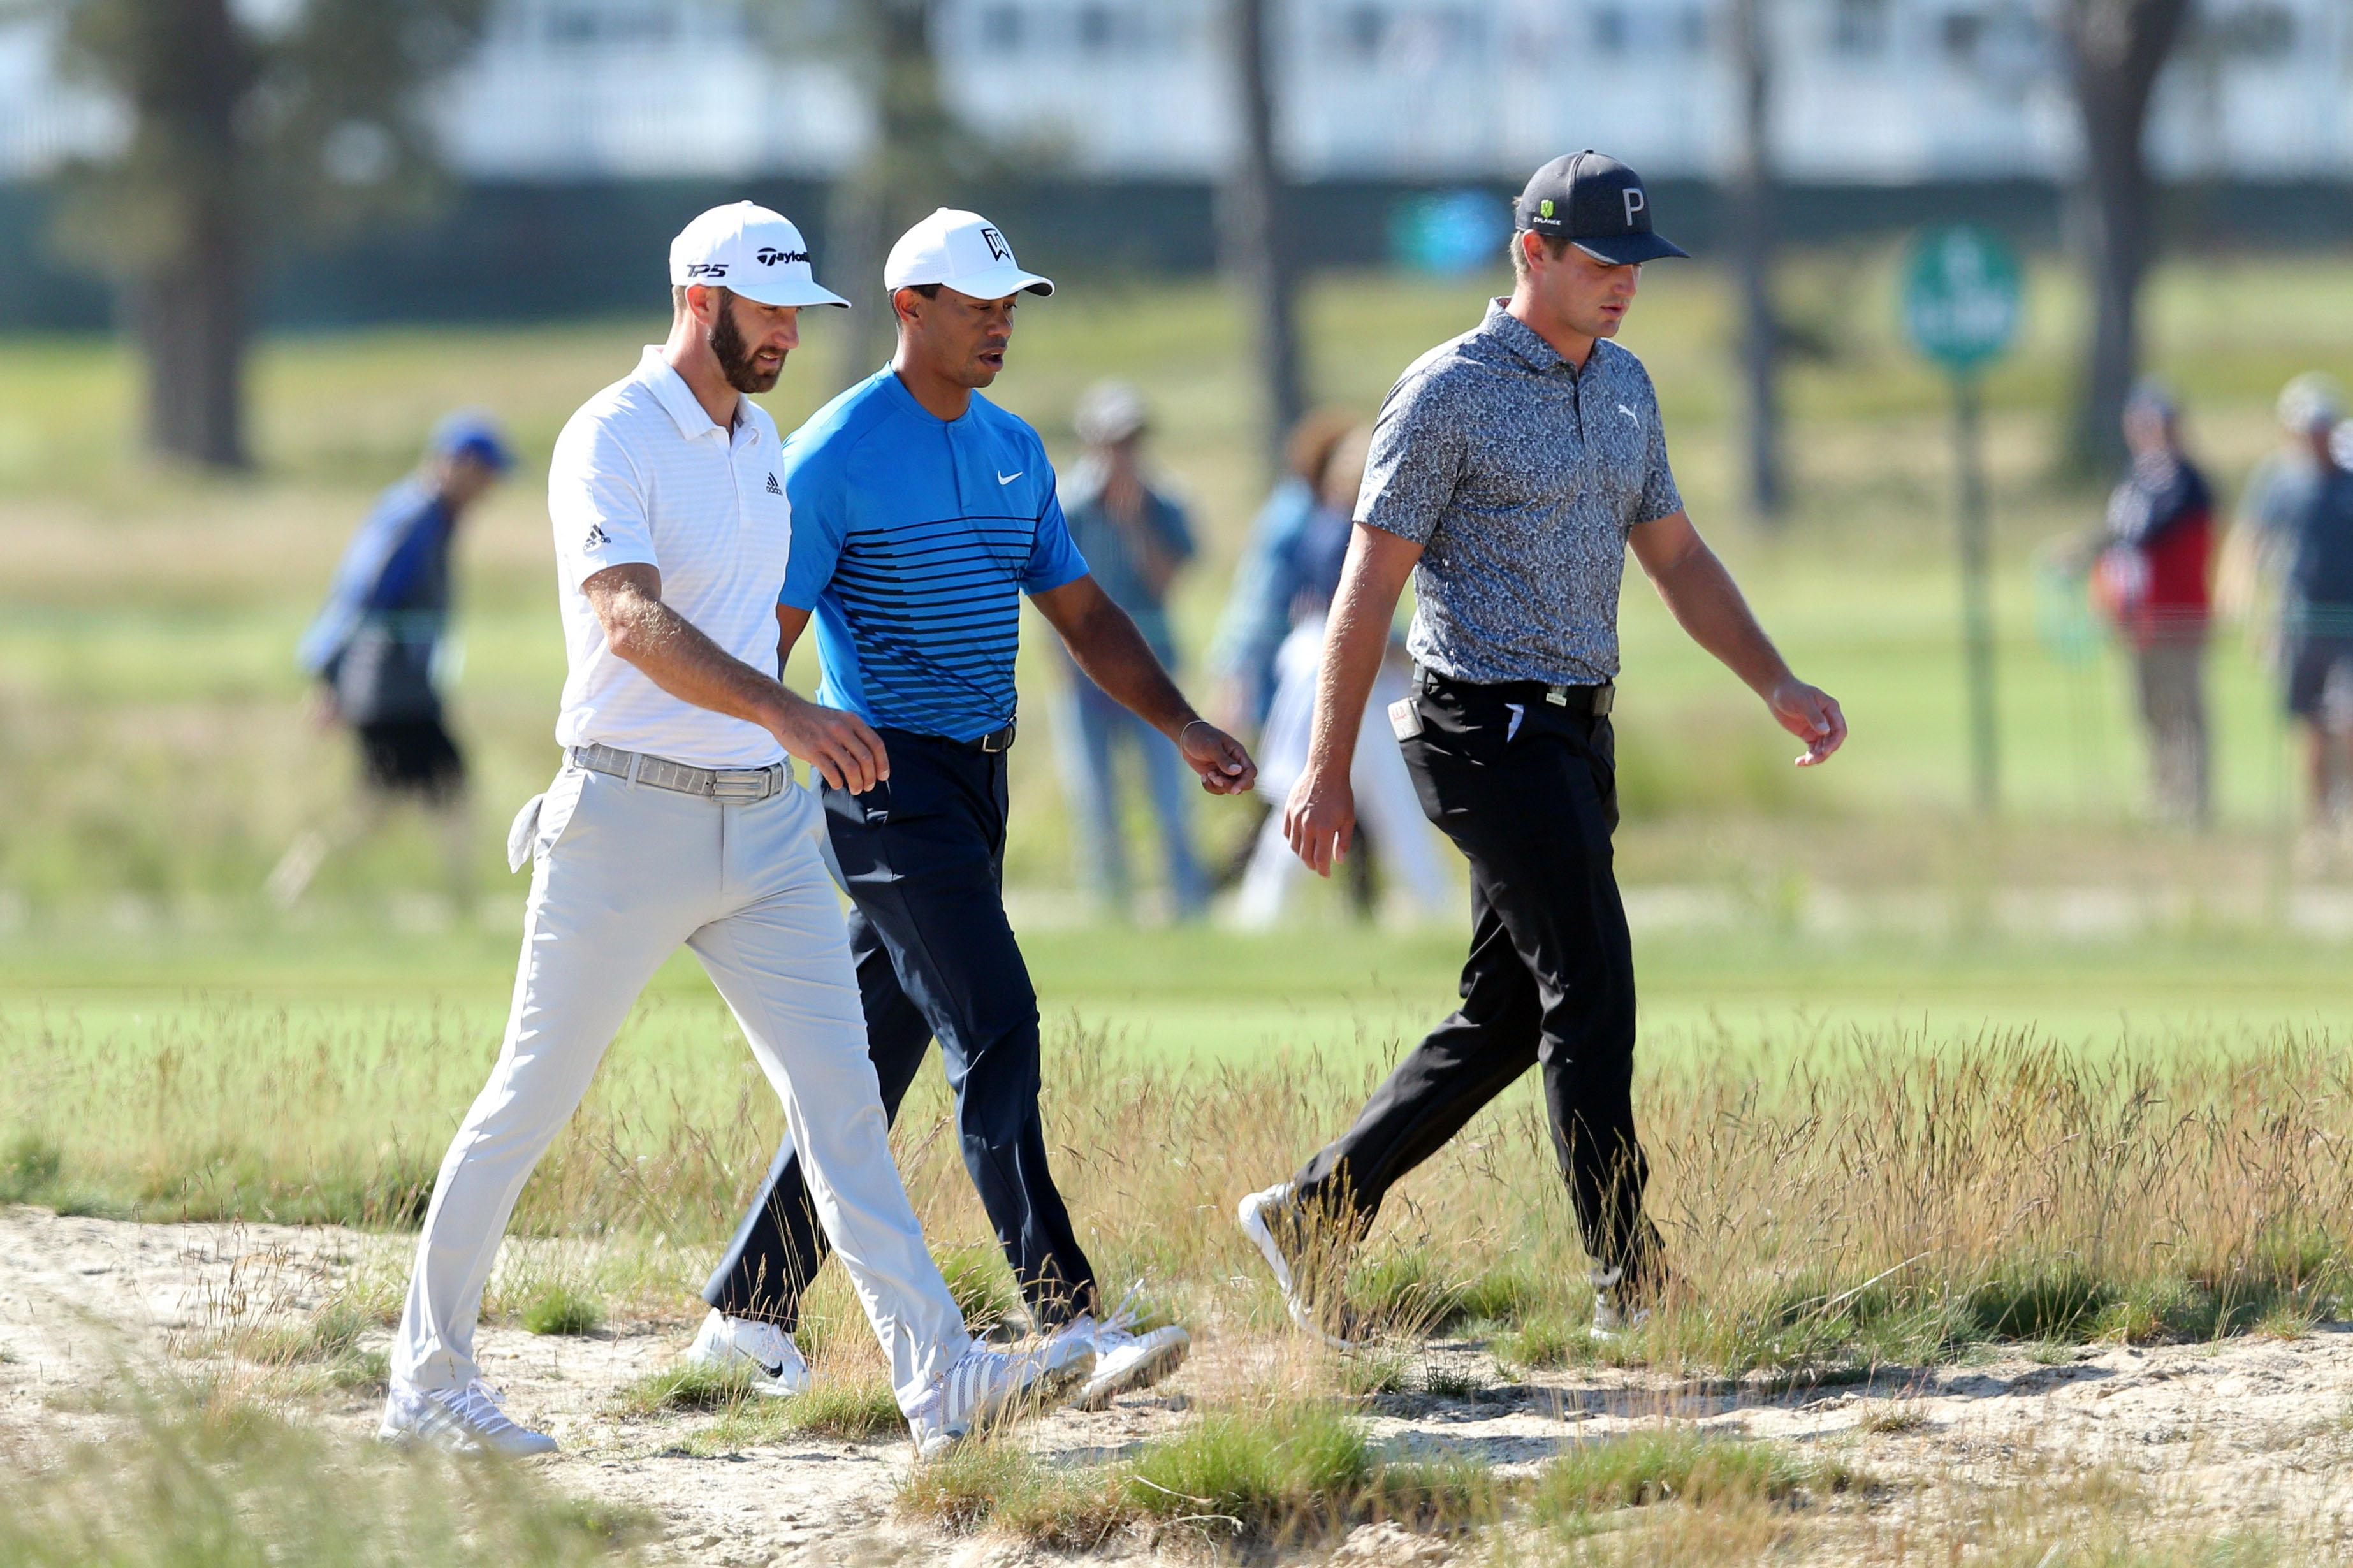 Woods completed his practice round alongside World No1 Dustin Johnson (left) and fellow American Bryson DeChambeau (right)